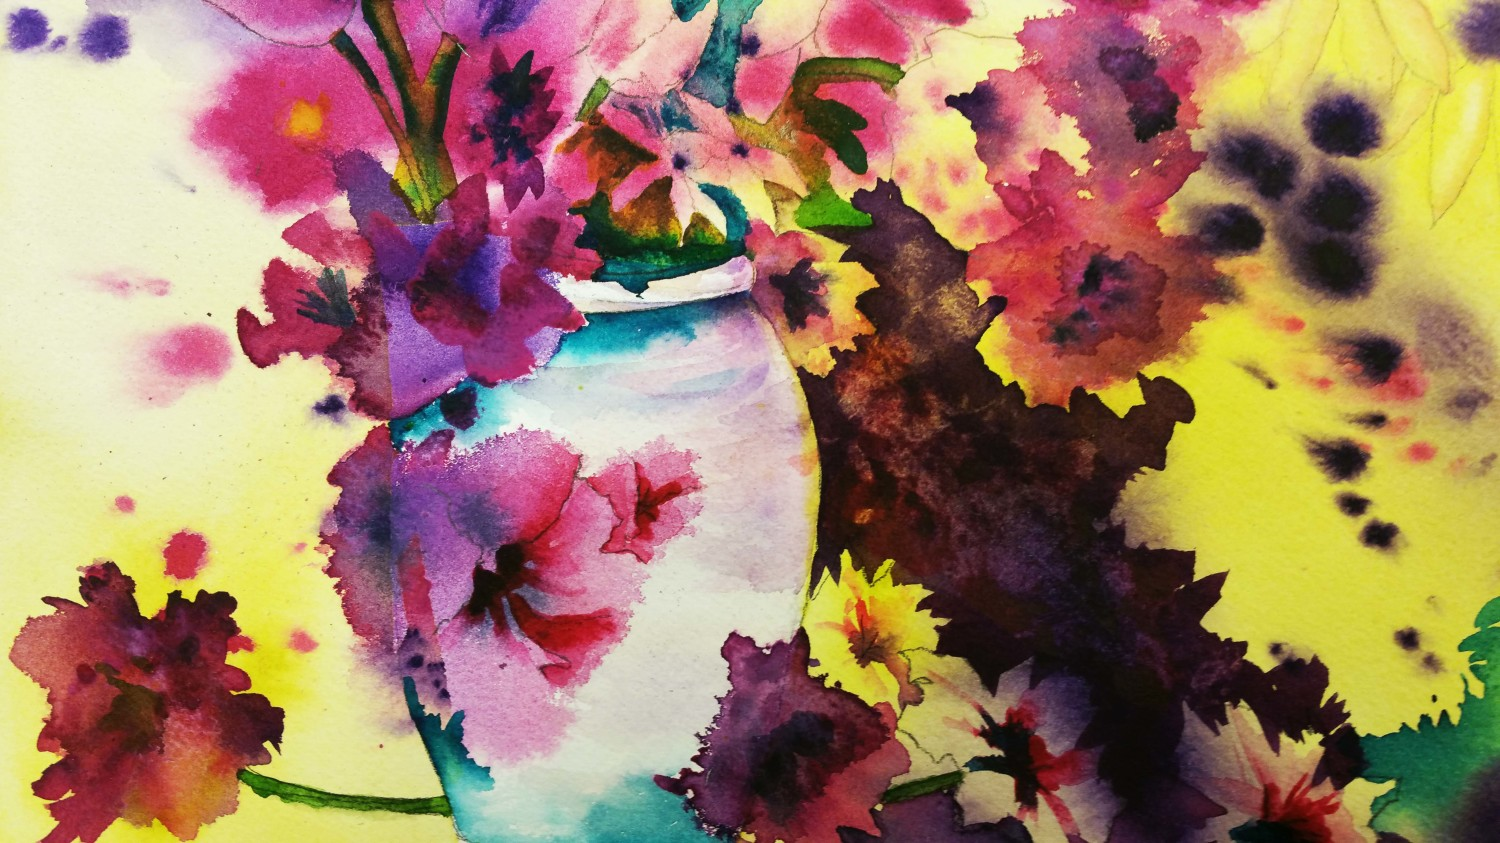 Abstract flowers by Sandy R.